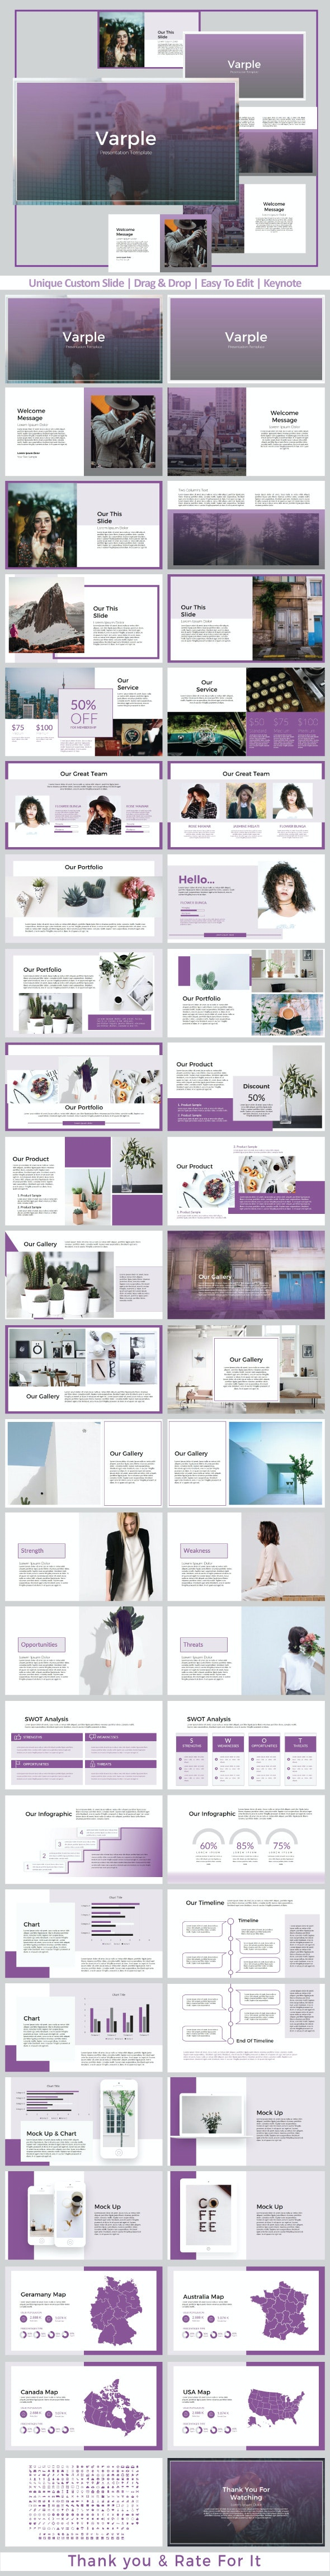 Varple Keynote Templates - Creative Keynote Templates